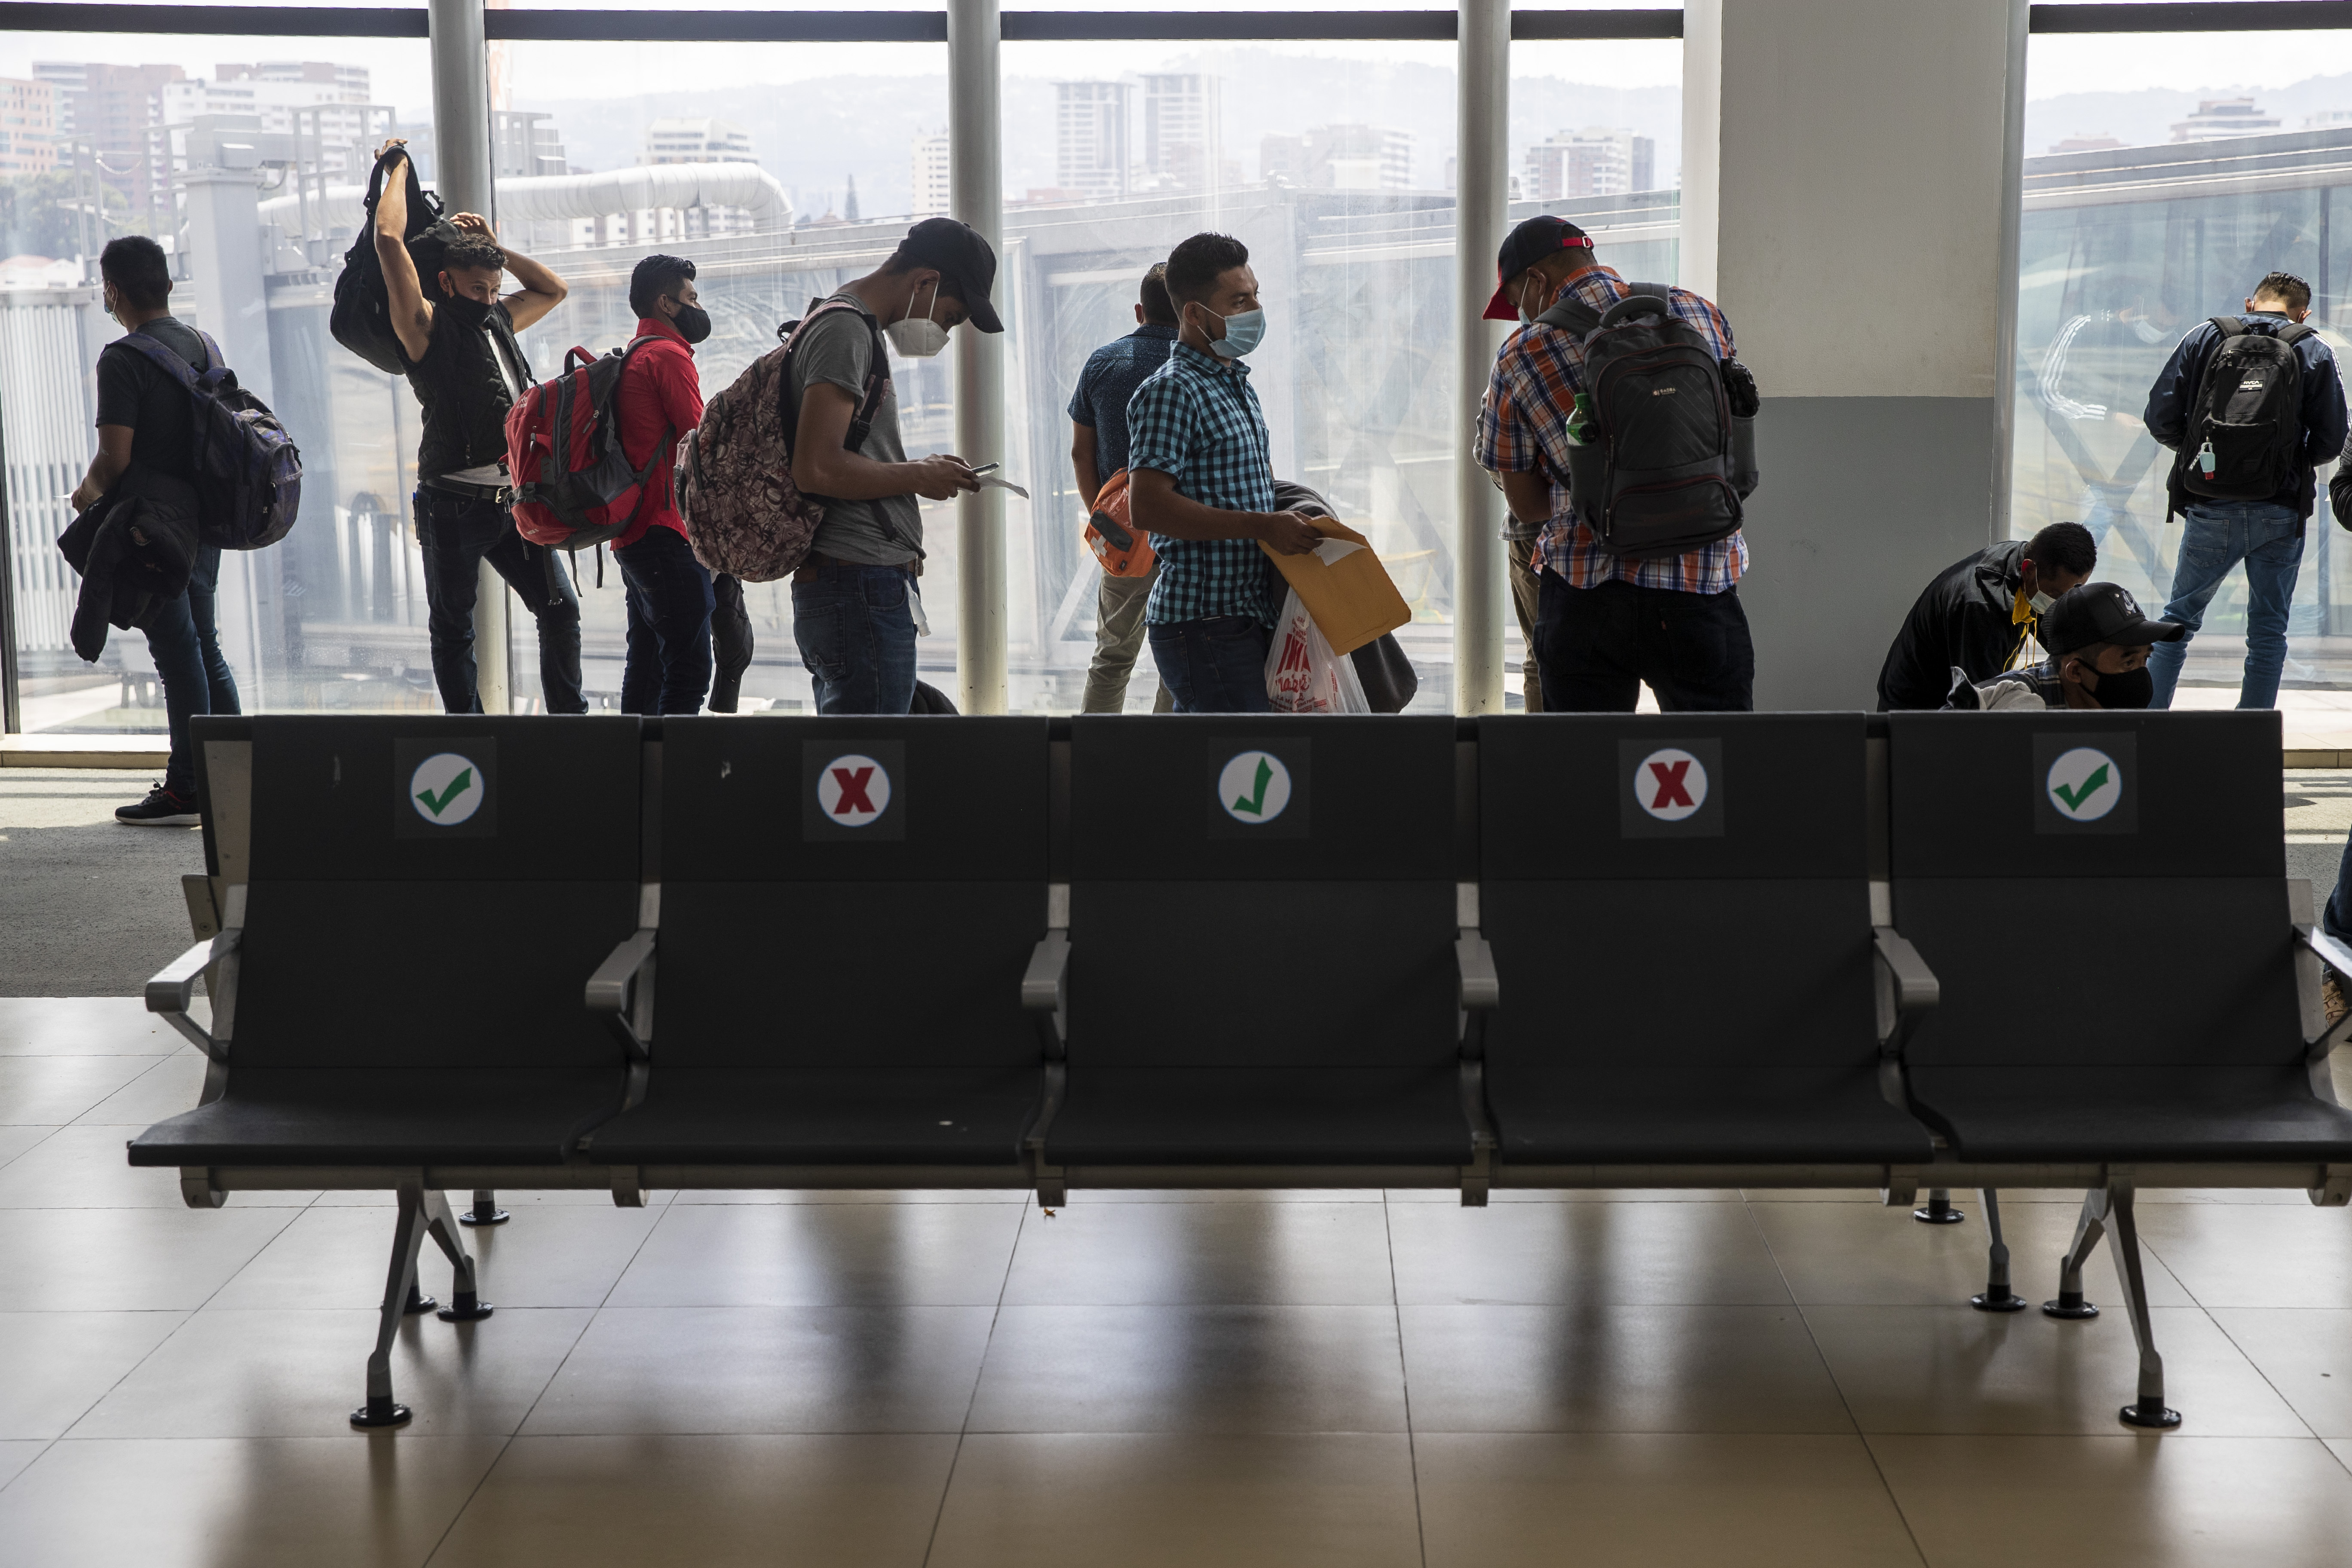 Passengers wait to board a humanitarian flight to Canada at the La Aurora international airport in Guatemala City, Thursday, Sept. 17, 2020. Authorities are preparing for the reopening of the airport on Friday as part of the gradual reopening of the country's borders by allowing national flights and some duly authorized international flights.